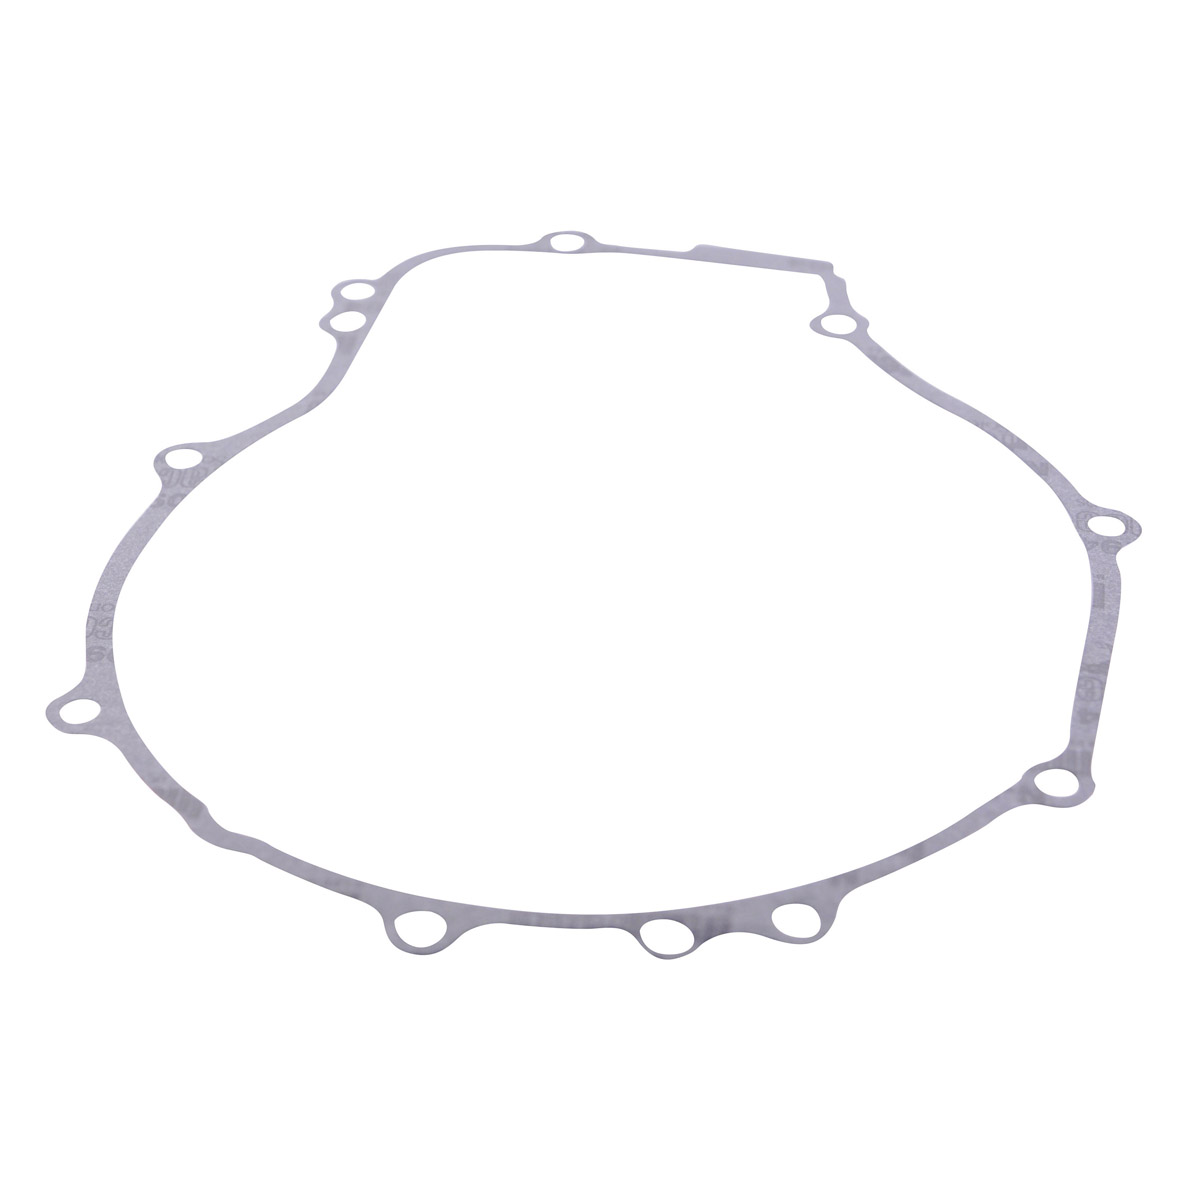 Stator Gasket For Polaris Sportsman 335 400 500 / 500 HO